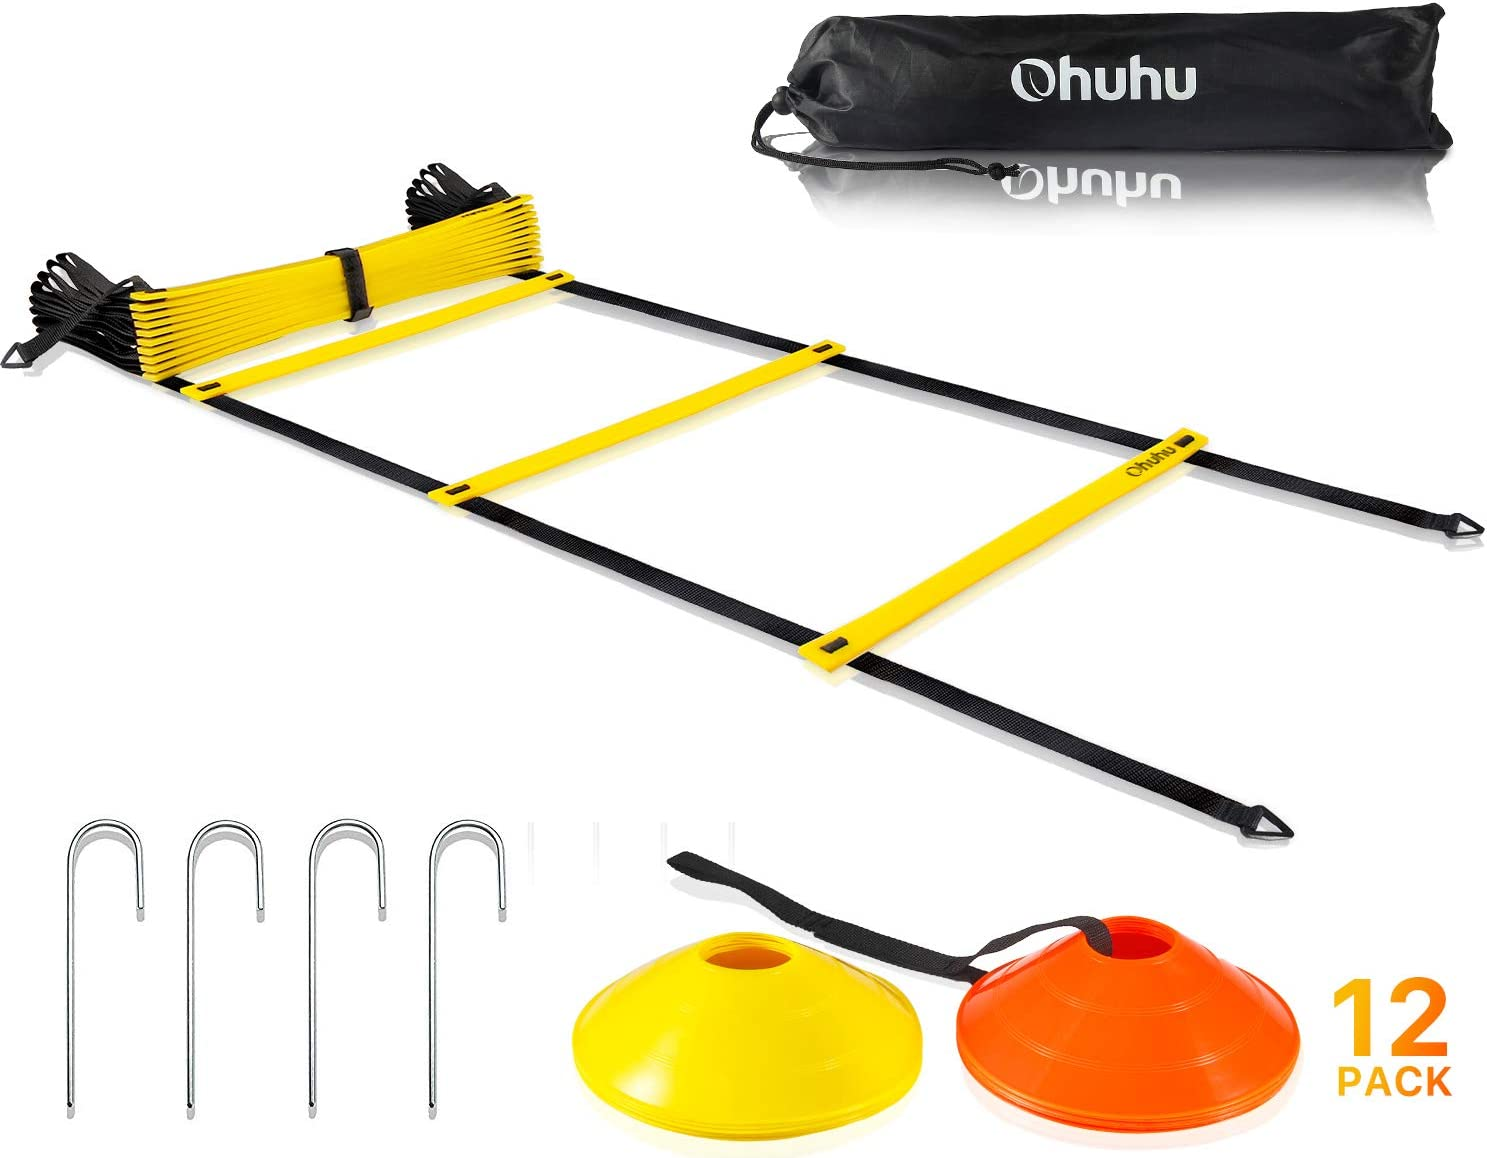 Ohuhu Speed Training Ladder Agility Training Set – 12 Rung 20Ft Agility Ladder and 12 Field Cones,4 Steel Stakes Carrying Bag,Footwork Equipment for Soccer Football Boxing Drills